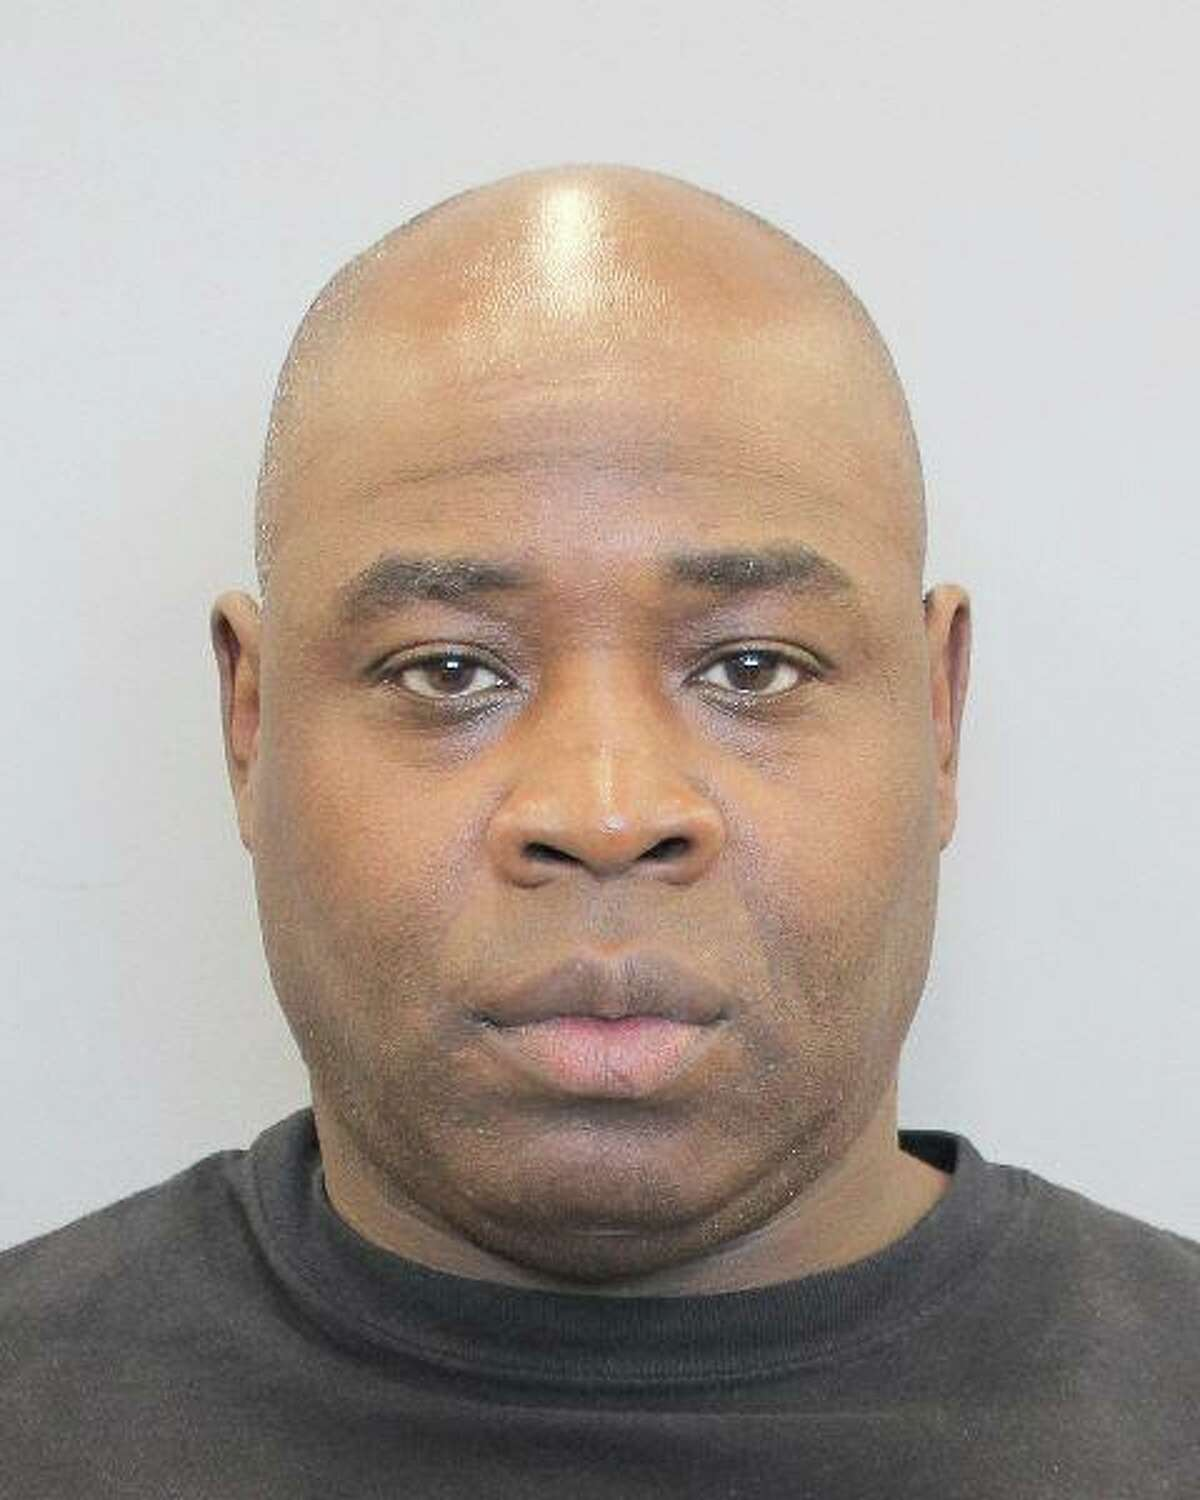 Carroll Richardson is under investigation for the operation of a group home in the 14000 block of Long Meadow Drive, where authorities found 37 people living together in poor condition.